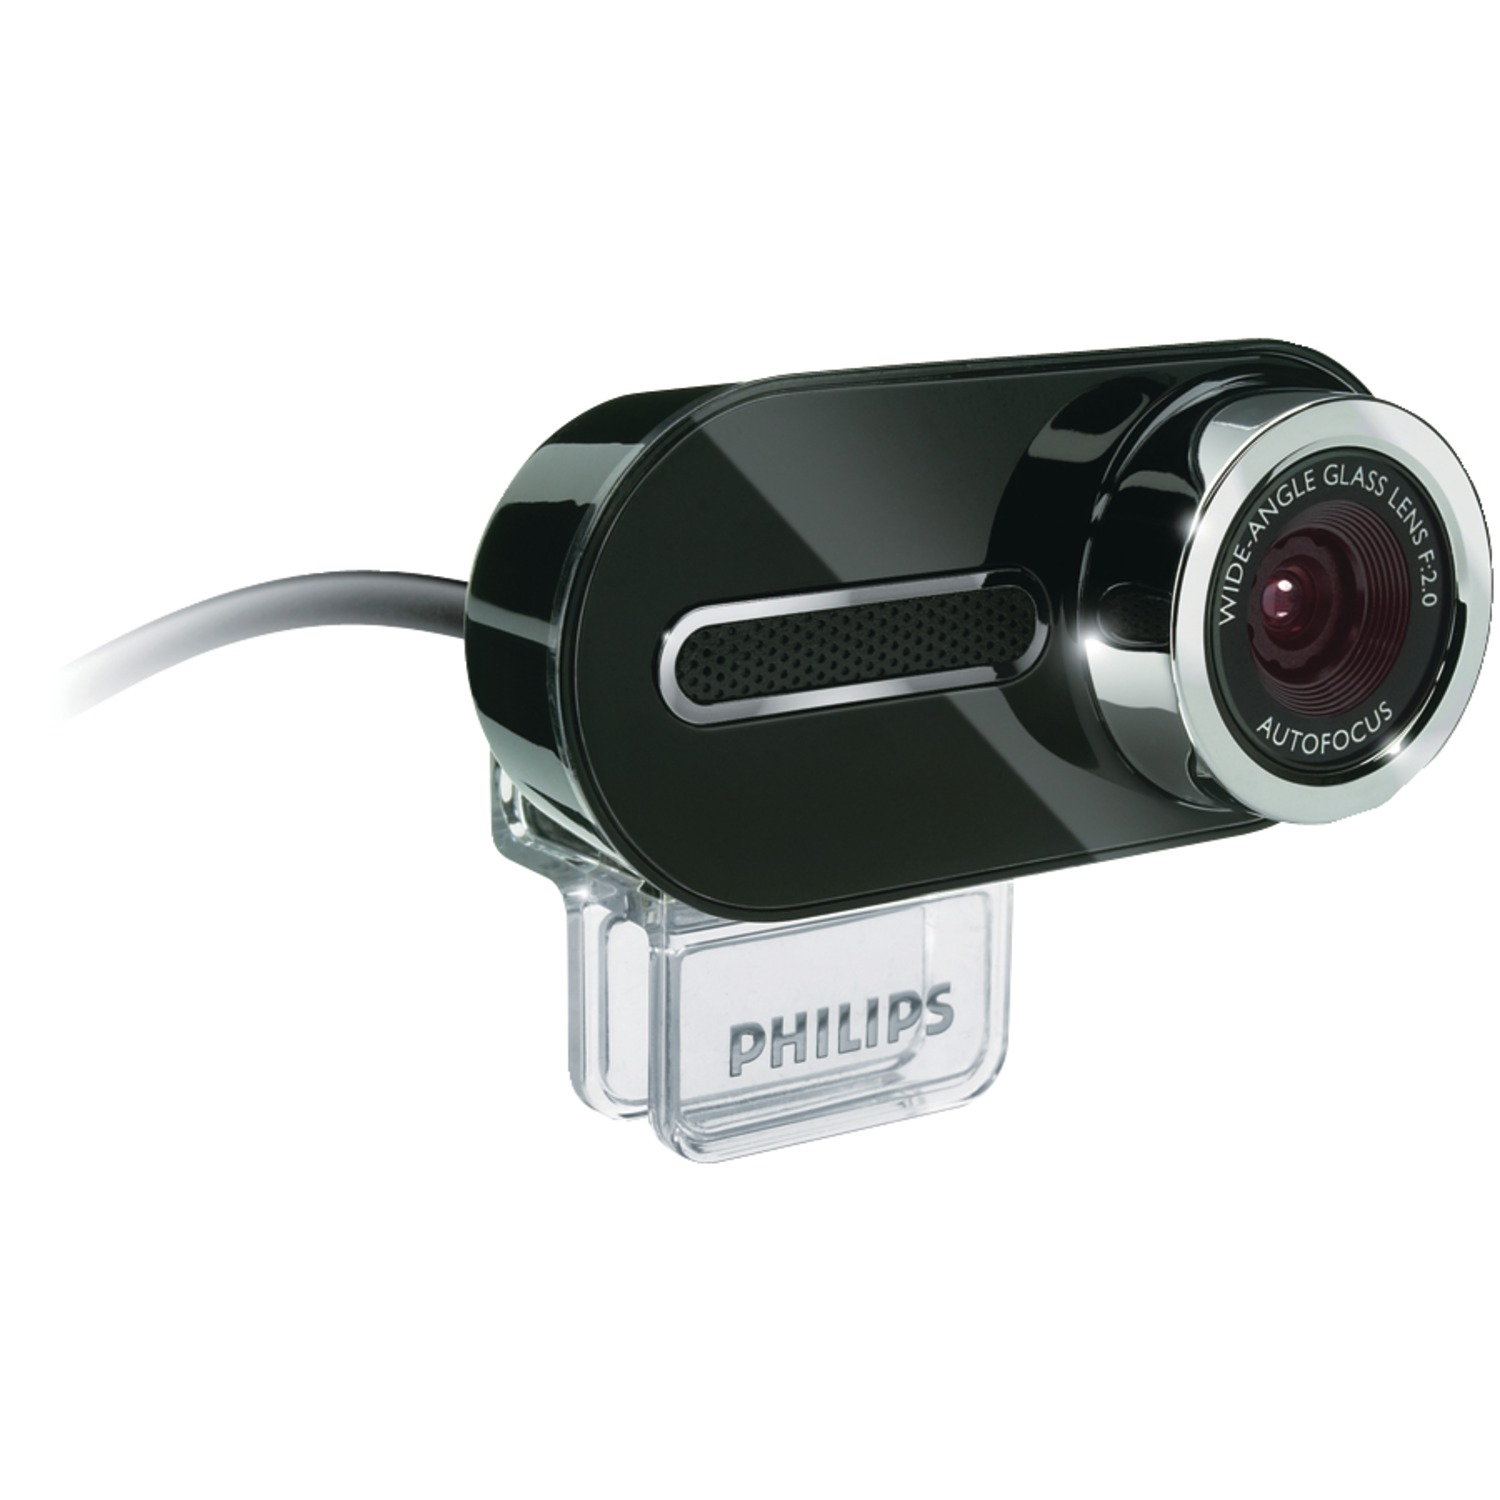 PHILIPS SPZ6500/27 2.0 Megapixel Notebook Web Cam